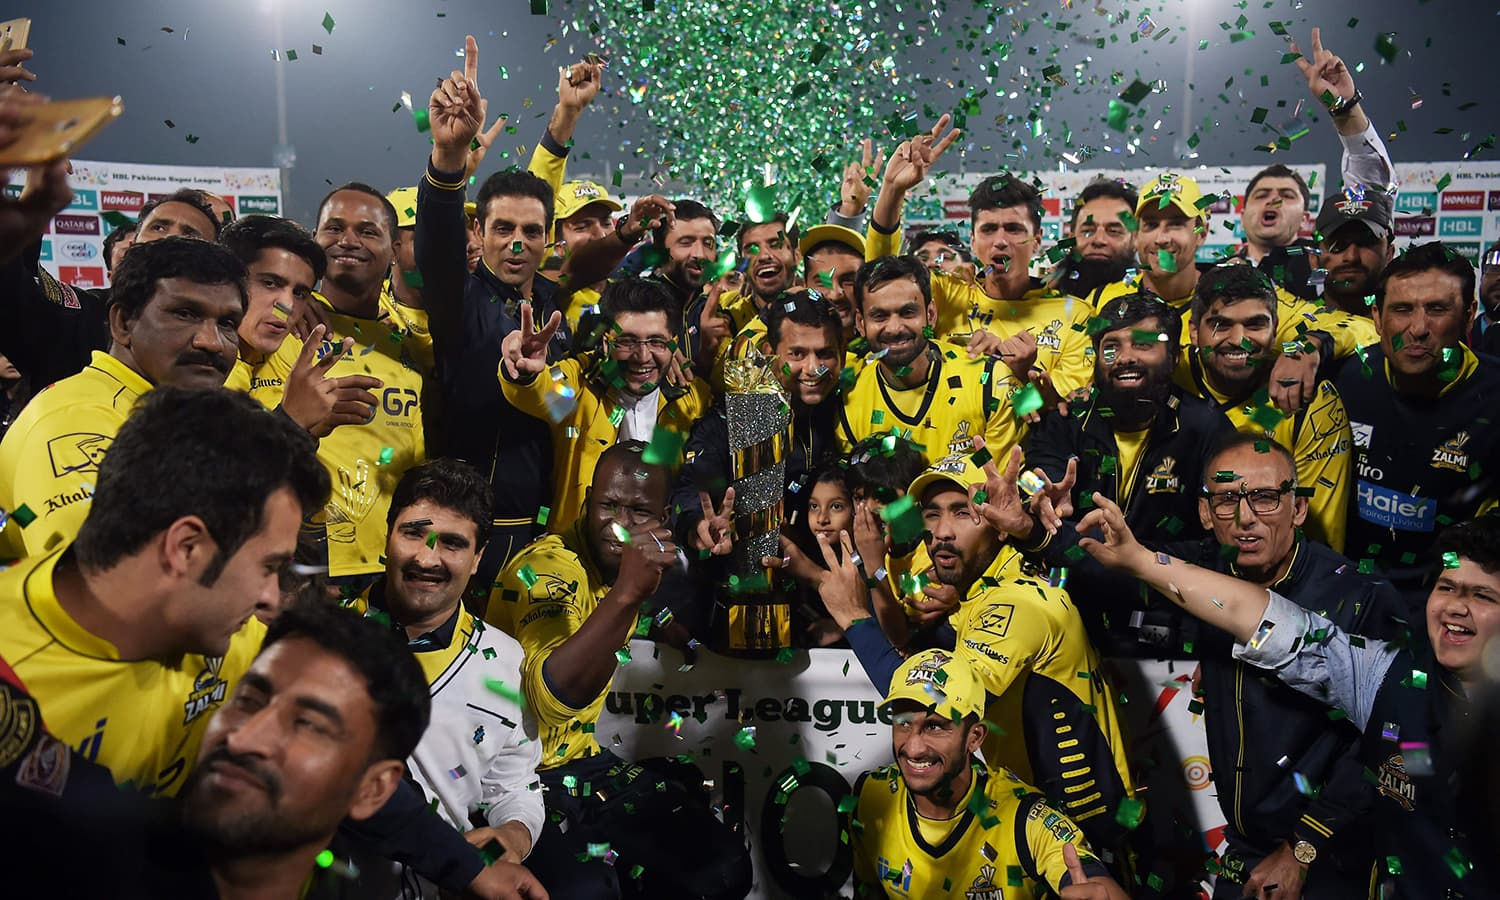 Cricketers of Peshawar Zalmi their victory over Quetta Gladiators in the final cricket match of the Pakistan Super League (PSL) at The Gaddafi Cricket Stadium in Lahore on March 5, 2017. / AFP PHOTO / AAMIR QURESHI — AFP or licensors